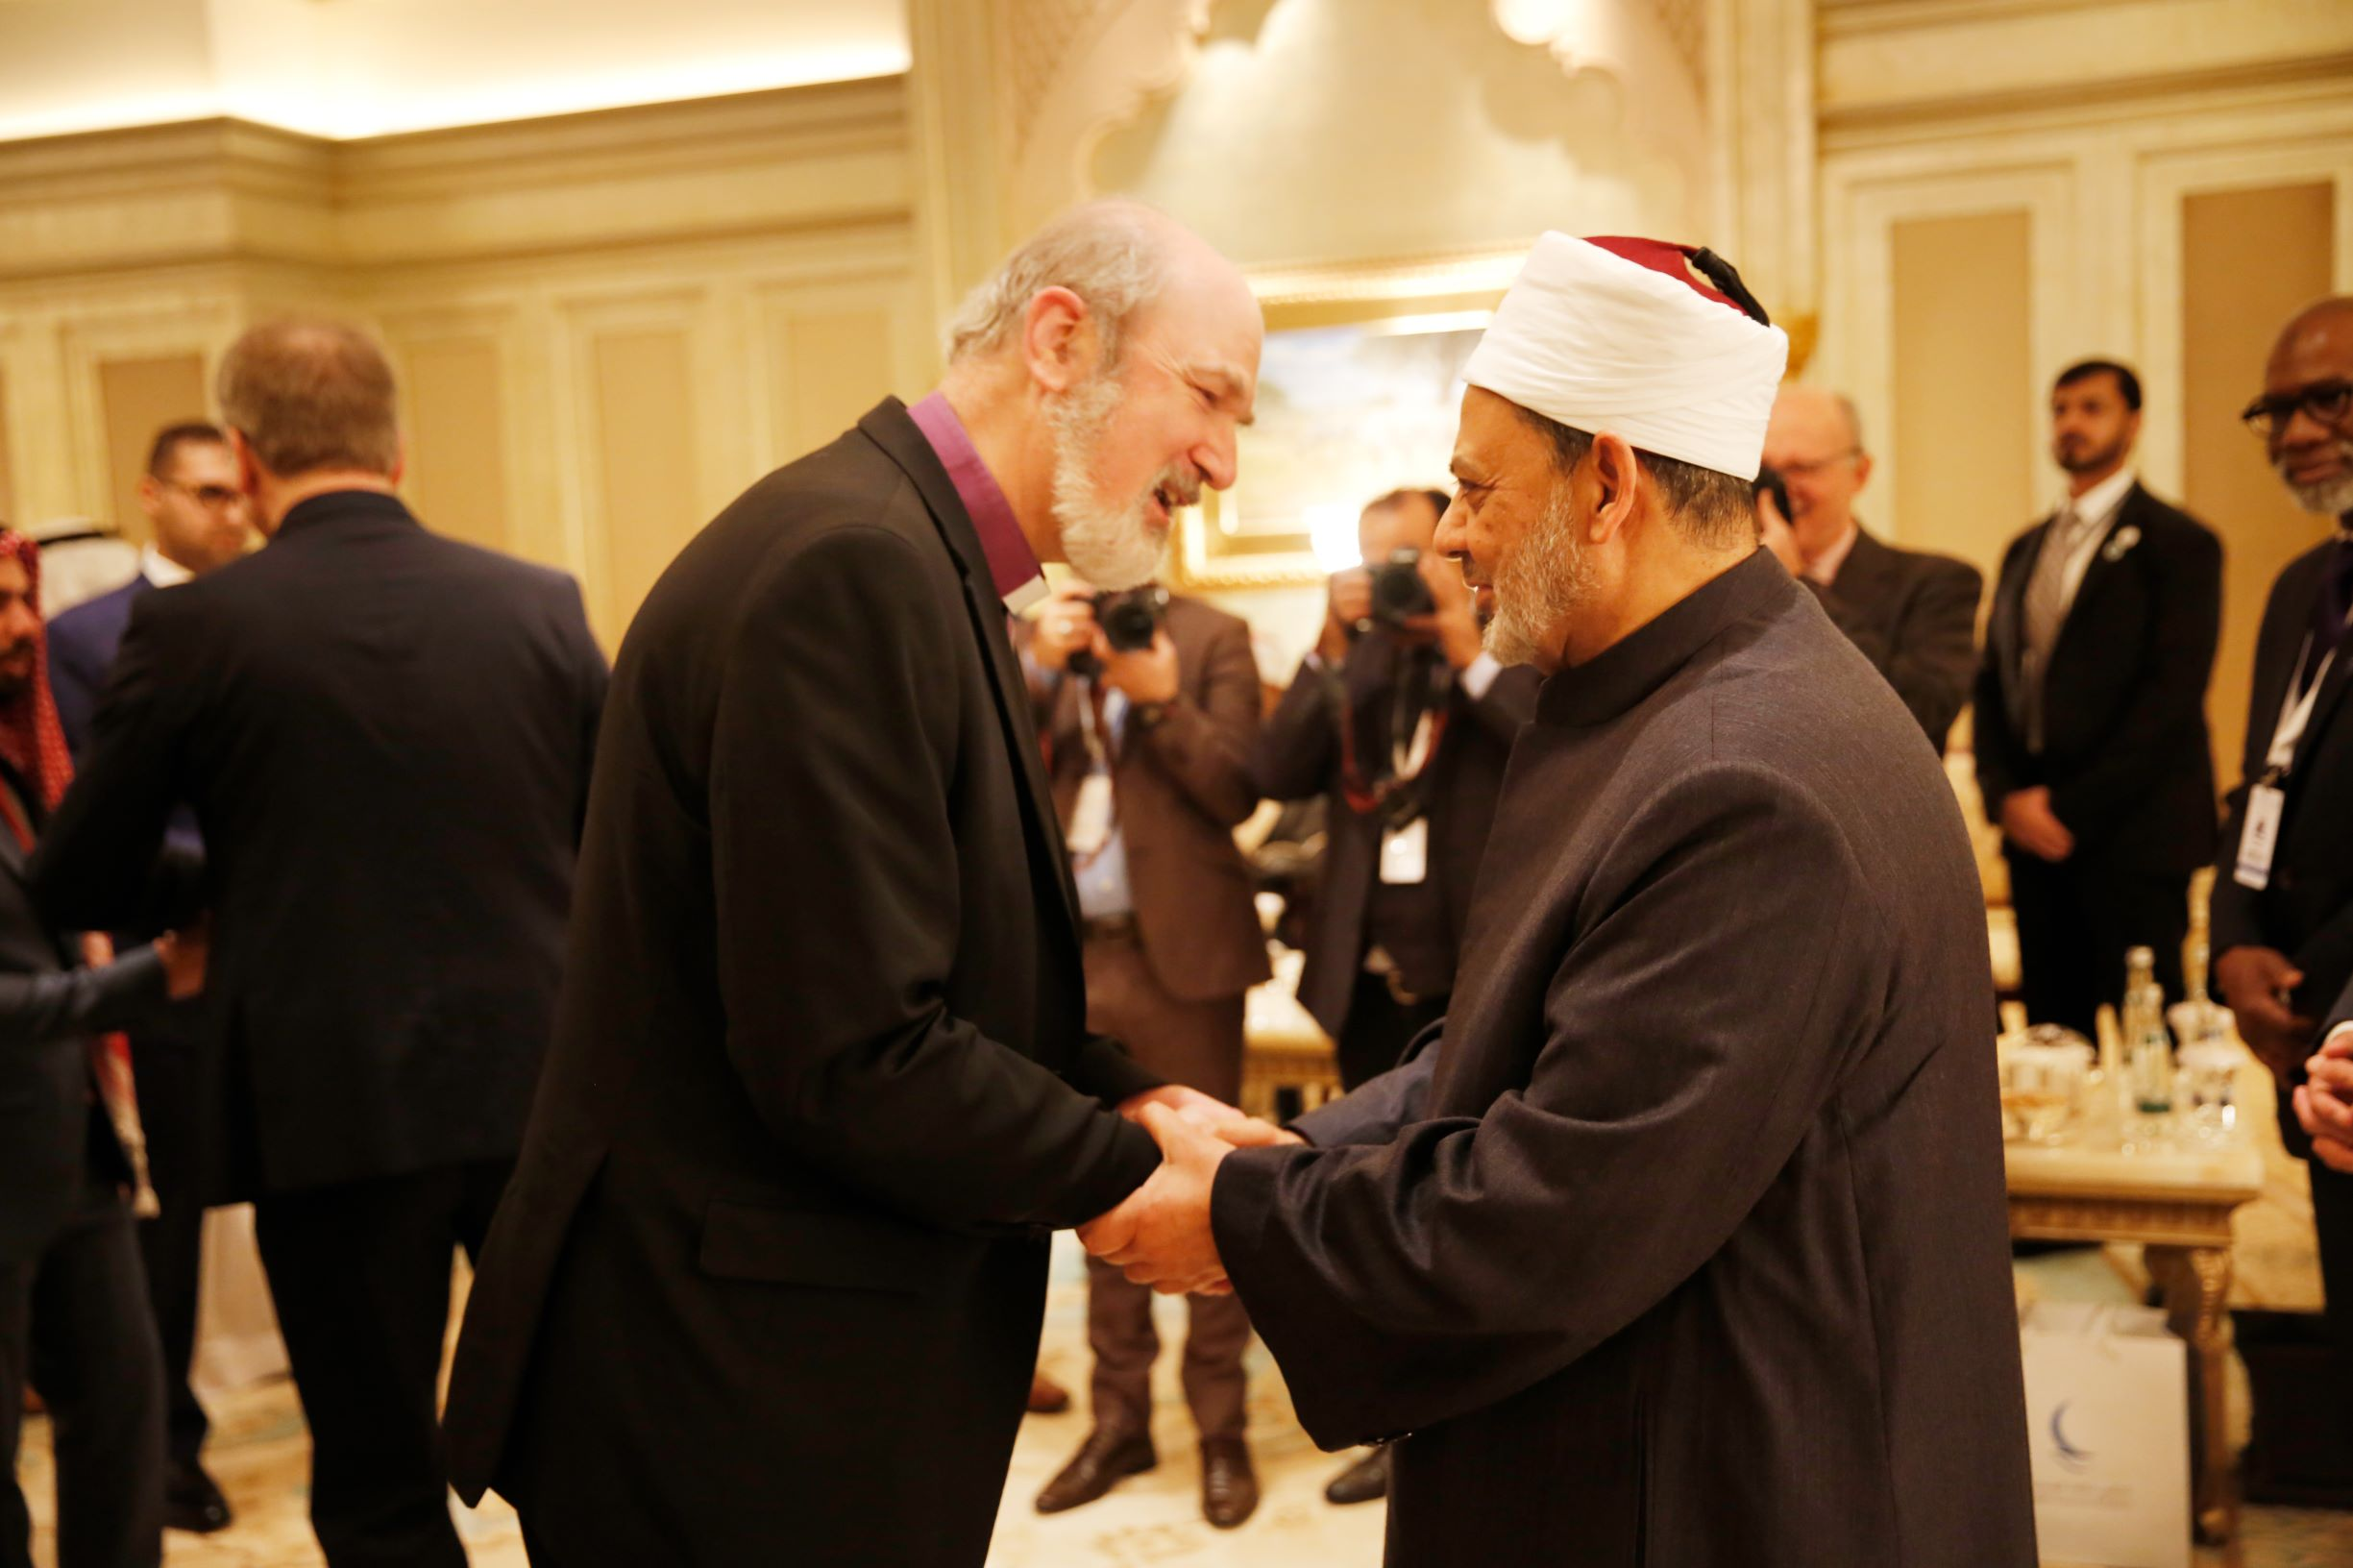 'we must confront hardliners with isolationist ideas with courage,' says grand imam of al azhar  3